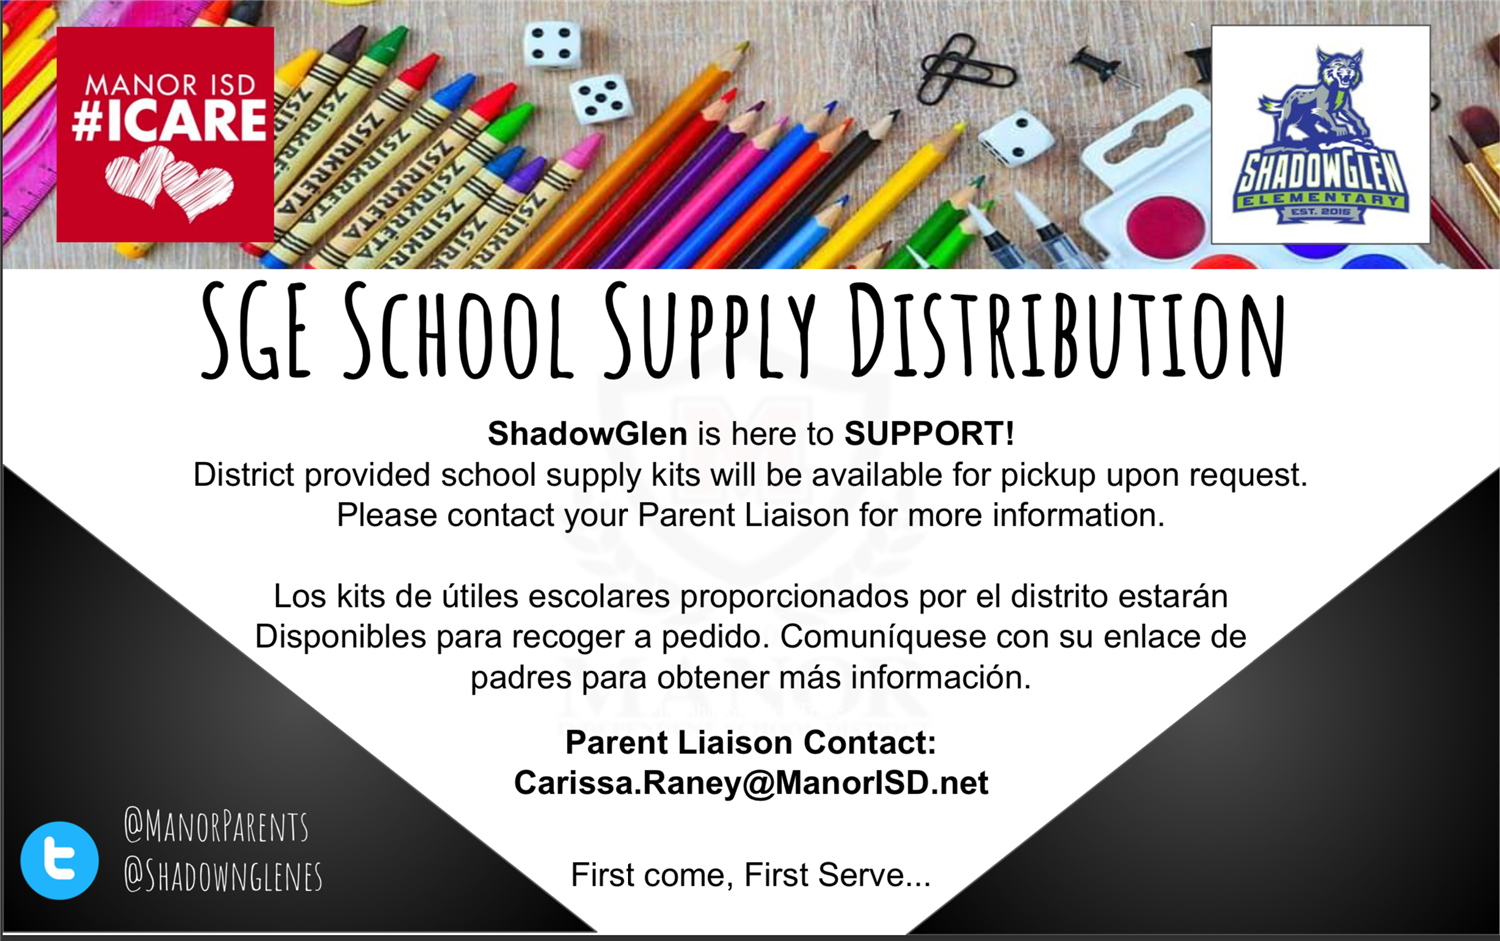 SGE School Supply Distribution